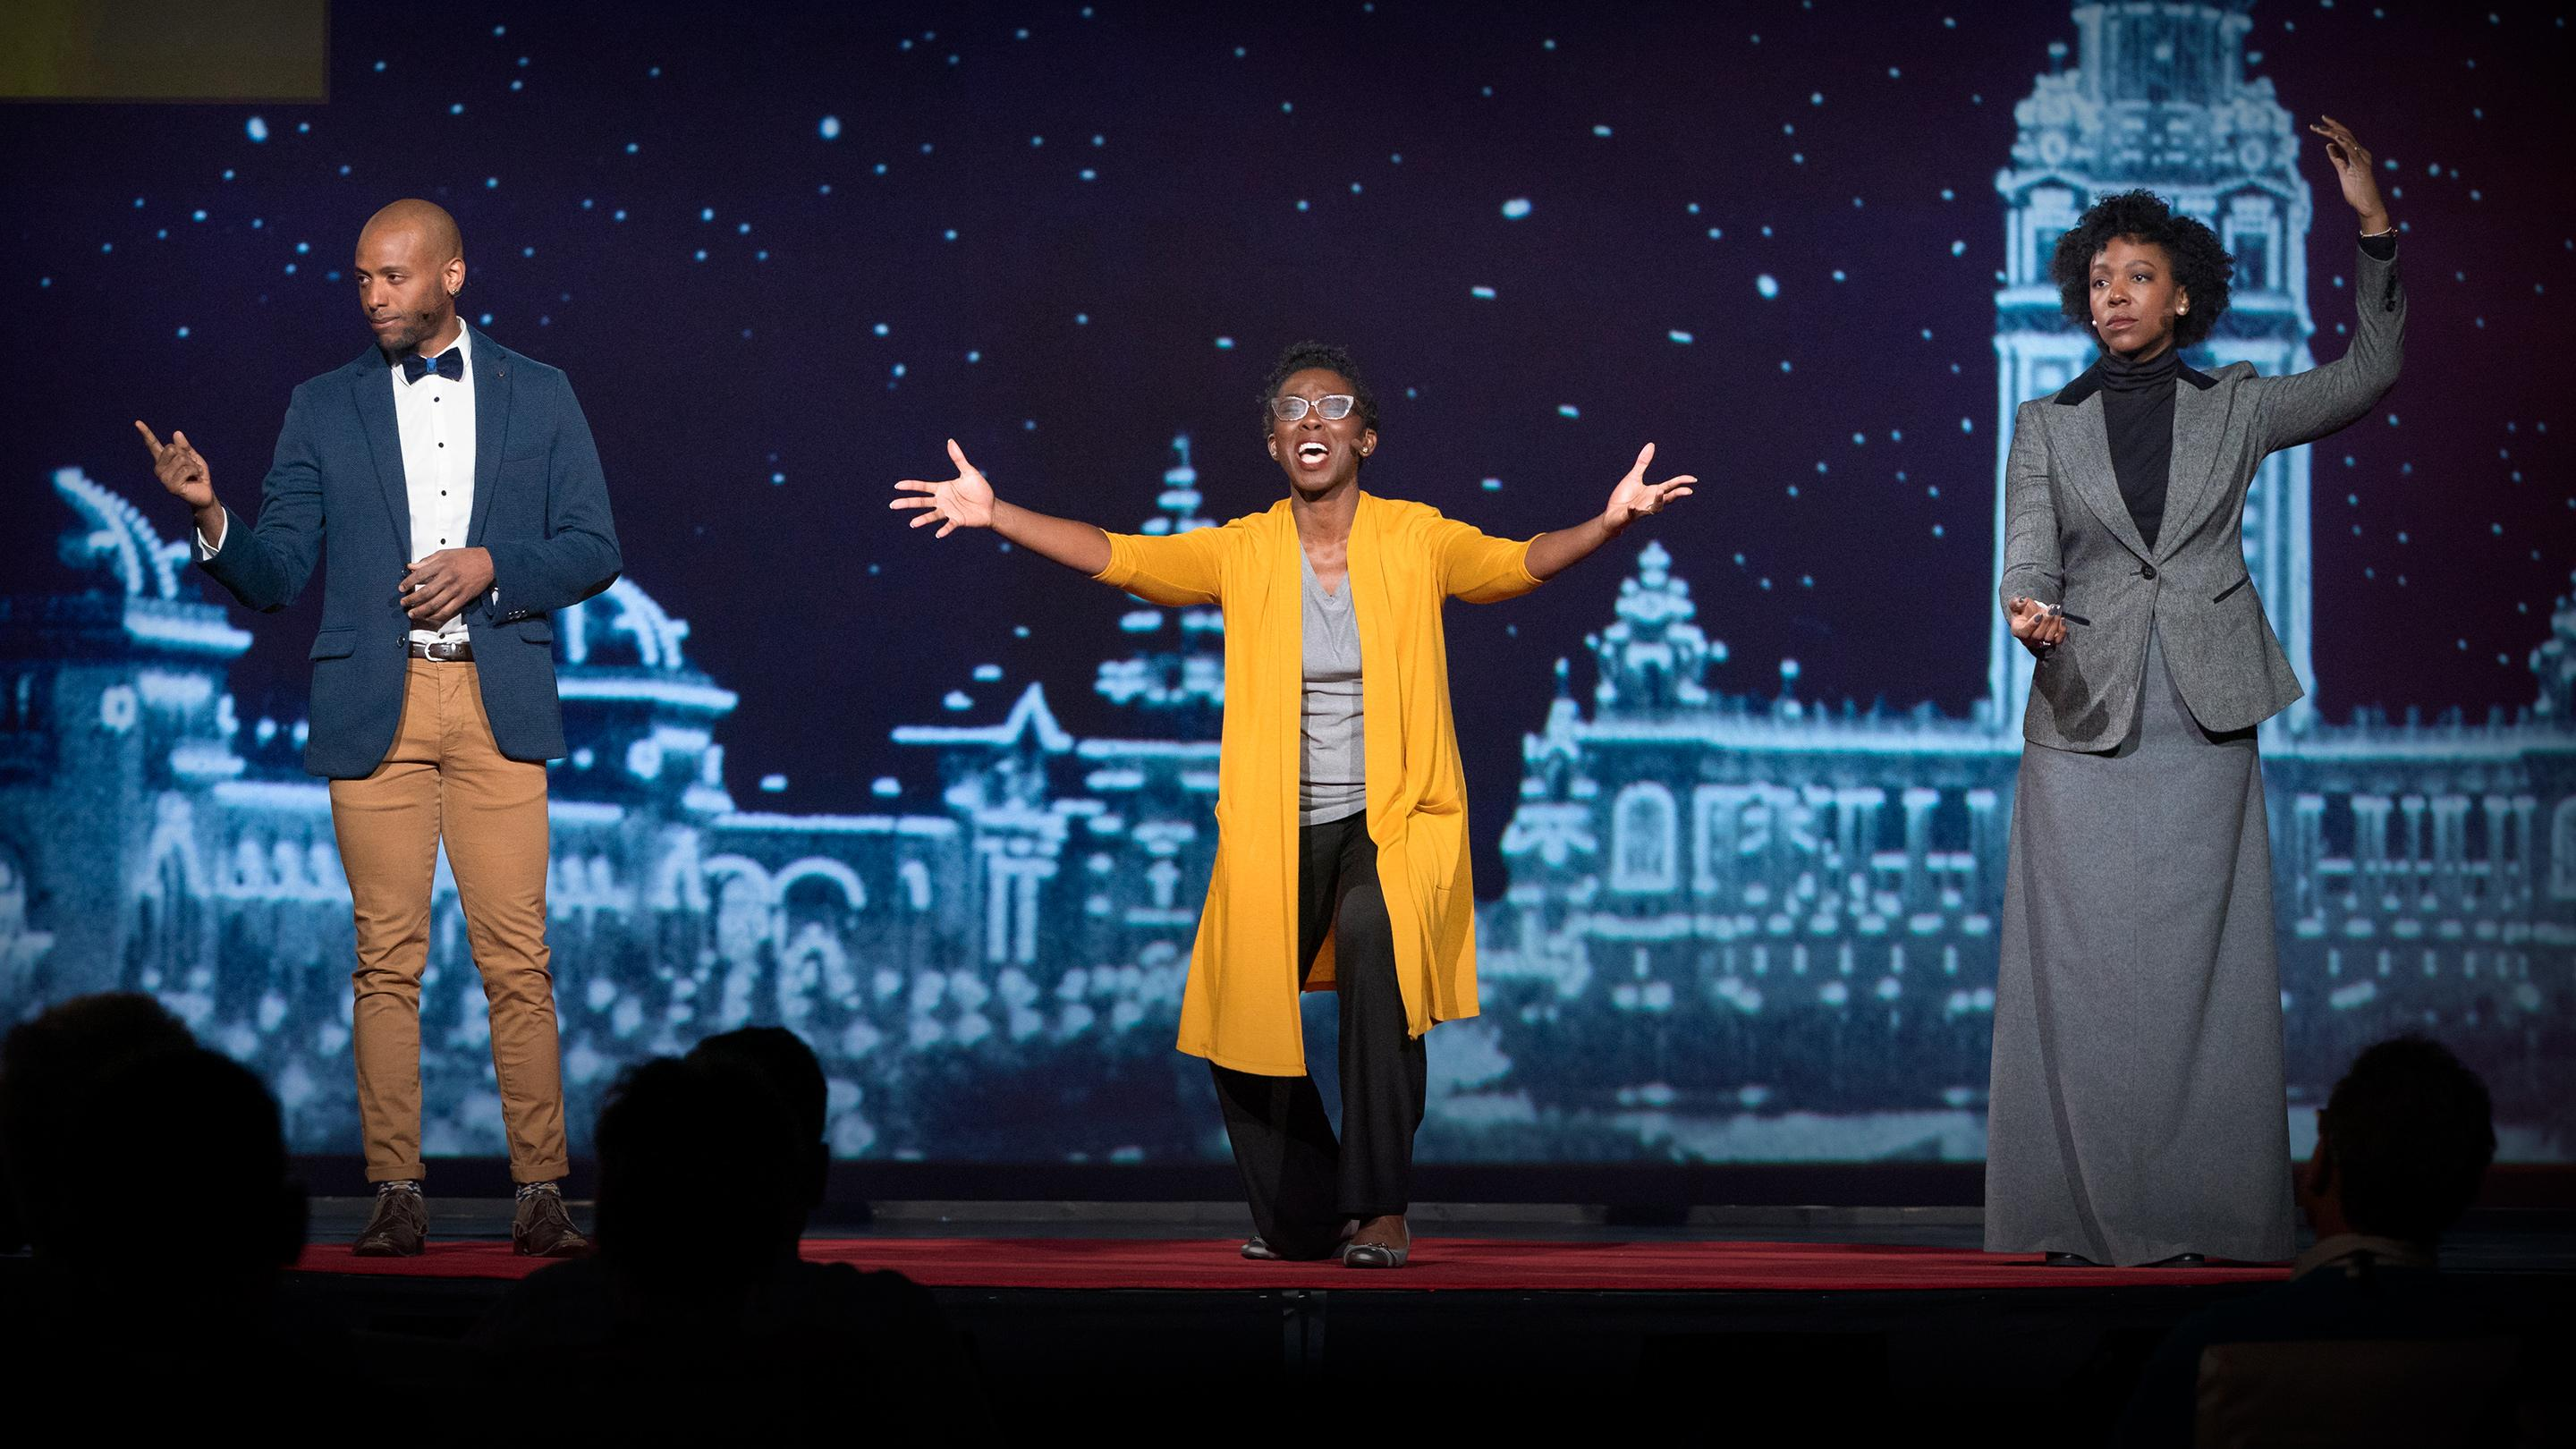 A historical musical that examines black identity in the 1901 World's Fair | Amma Y. Ghartey-Tagoe Kootin